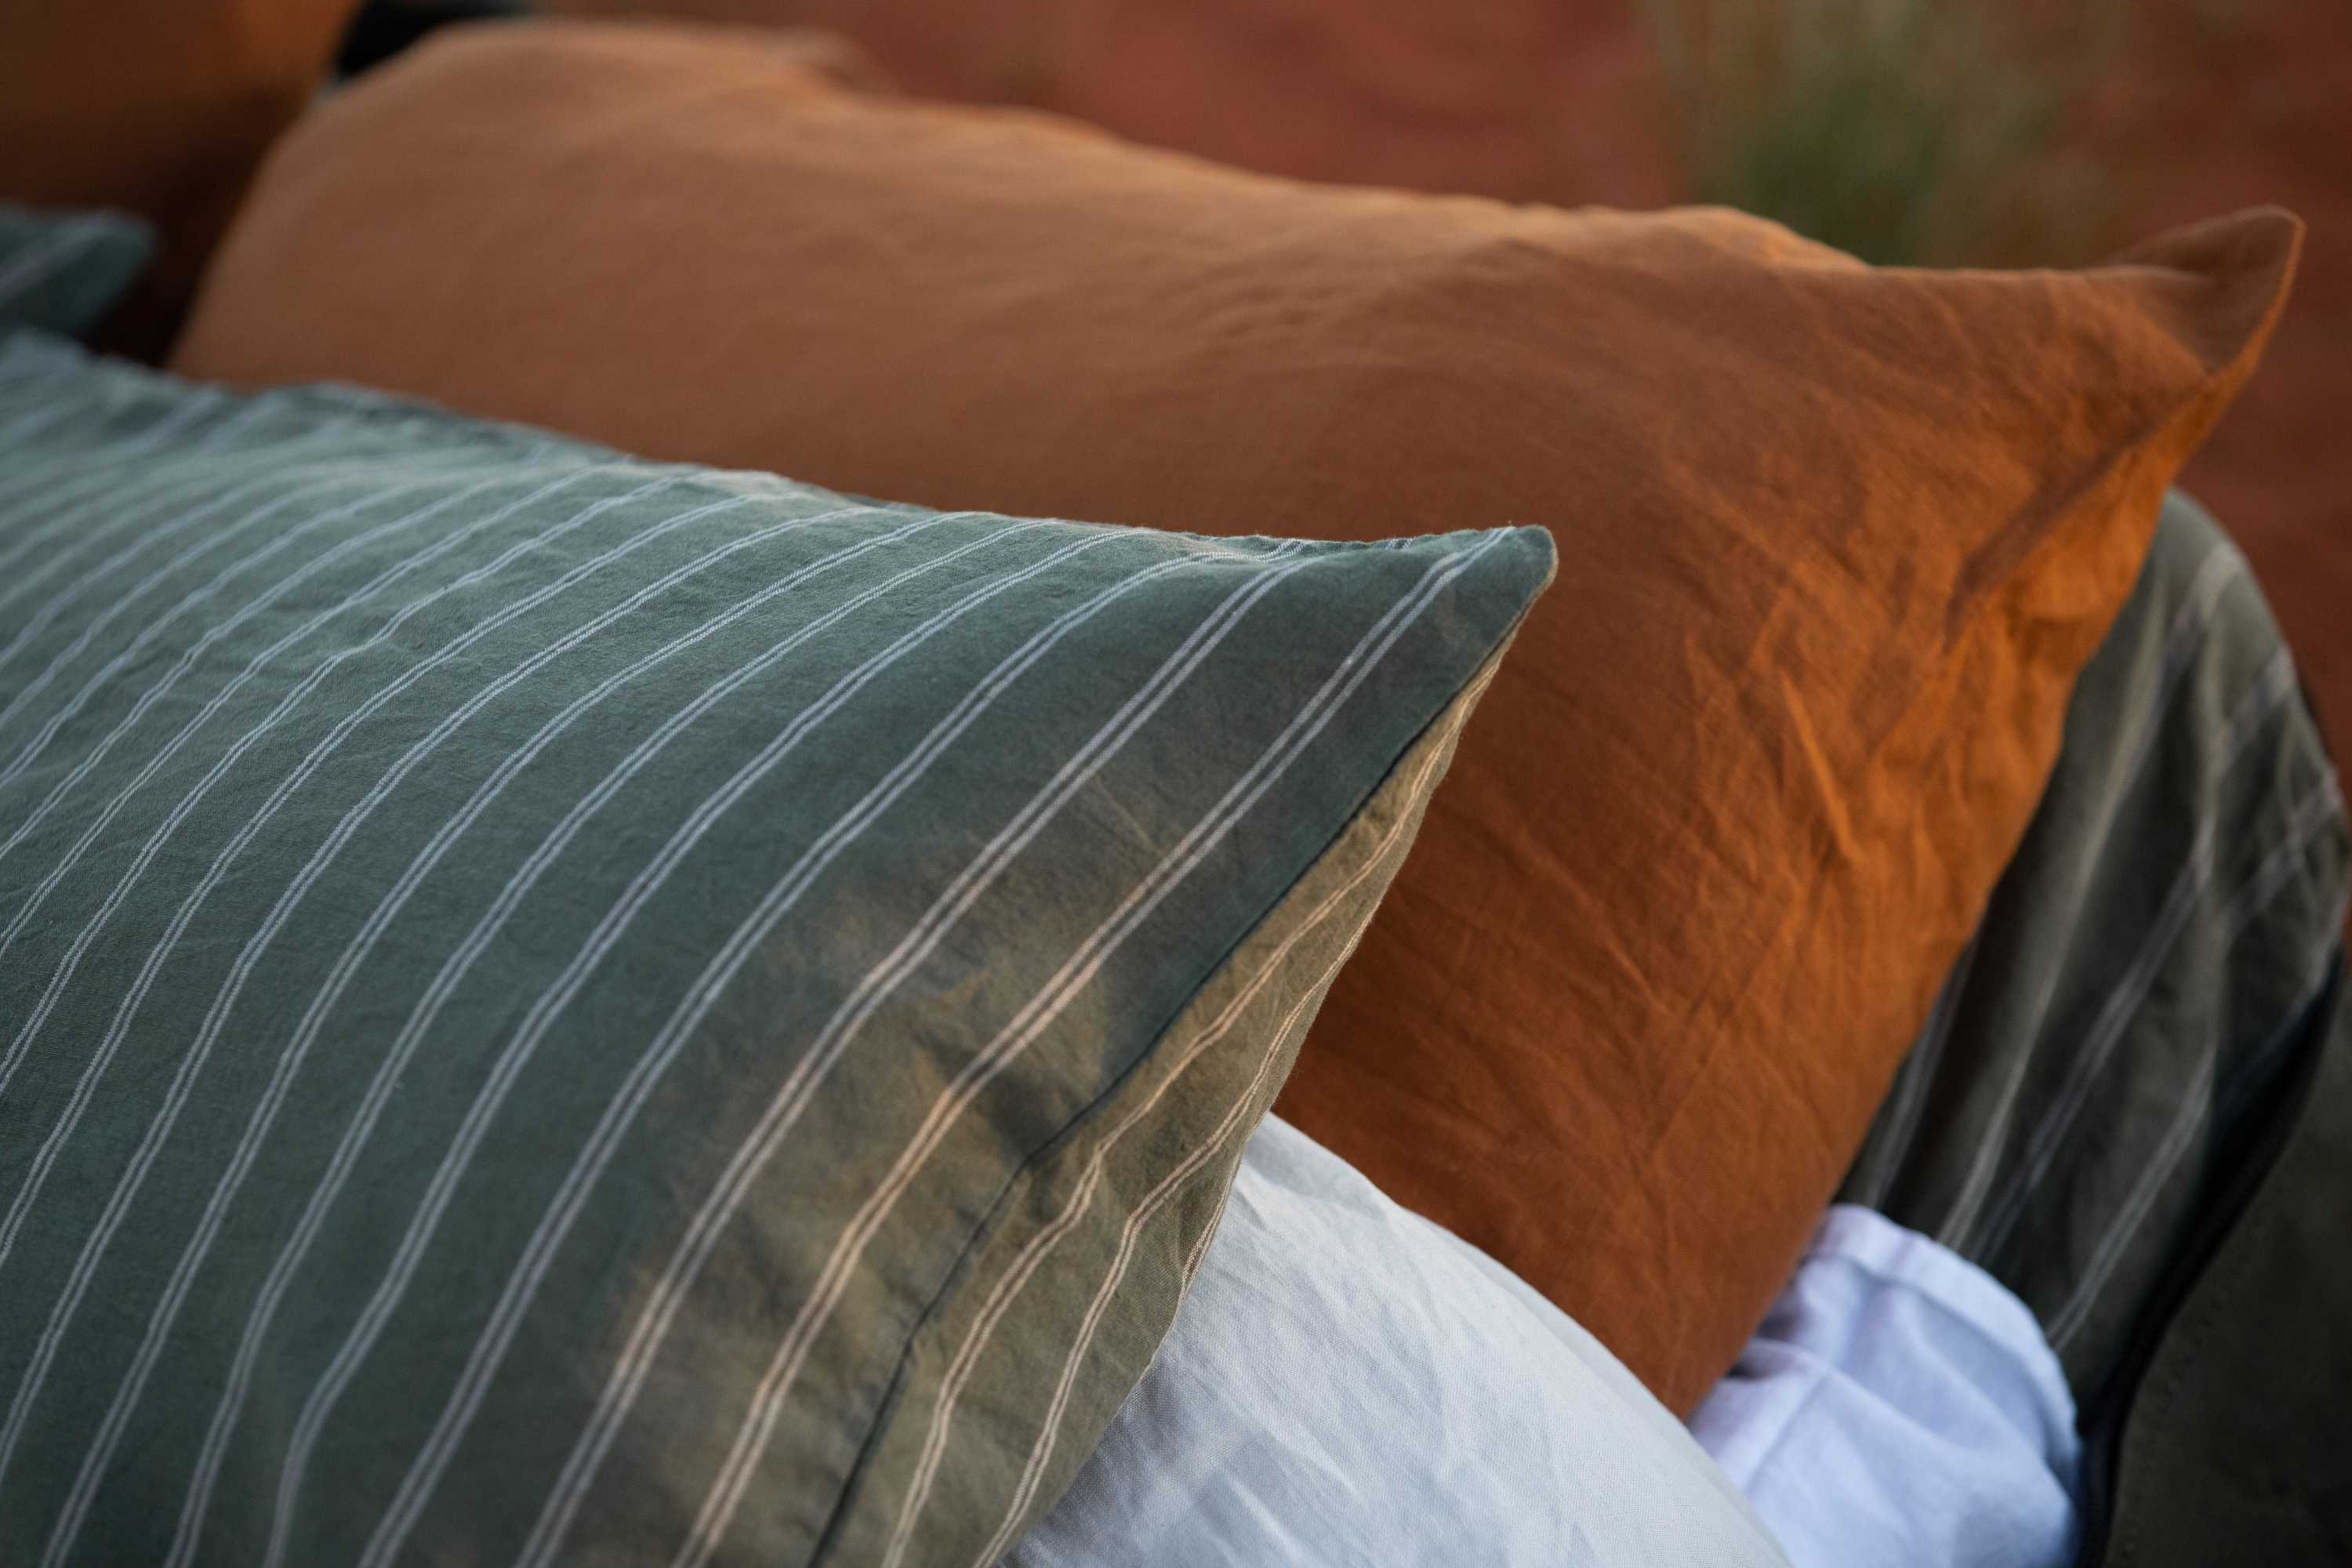 Linen duvet, sheets, pillowcases and sleepwear by IN BED